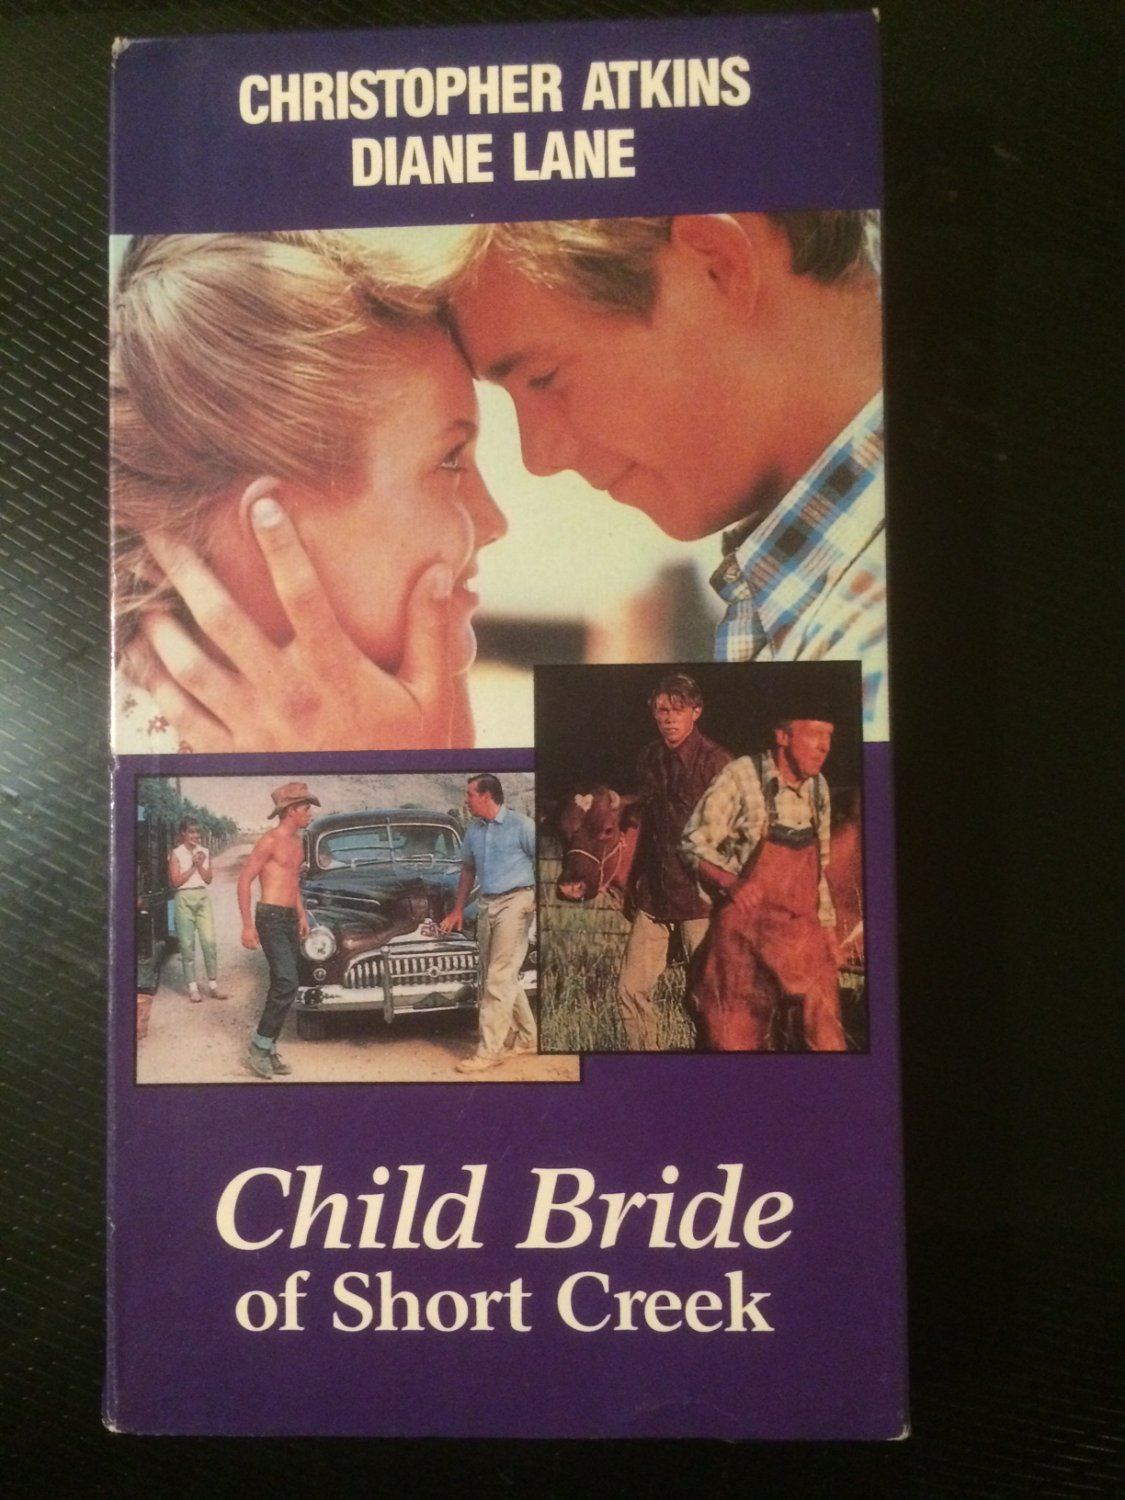 VHS - Child Bride of Short Creek - Used